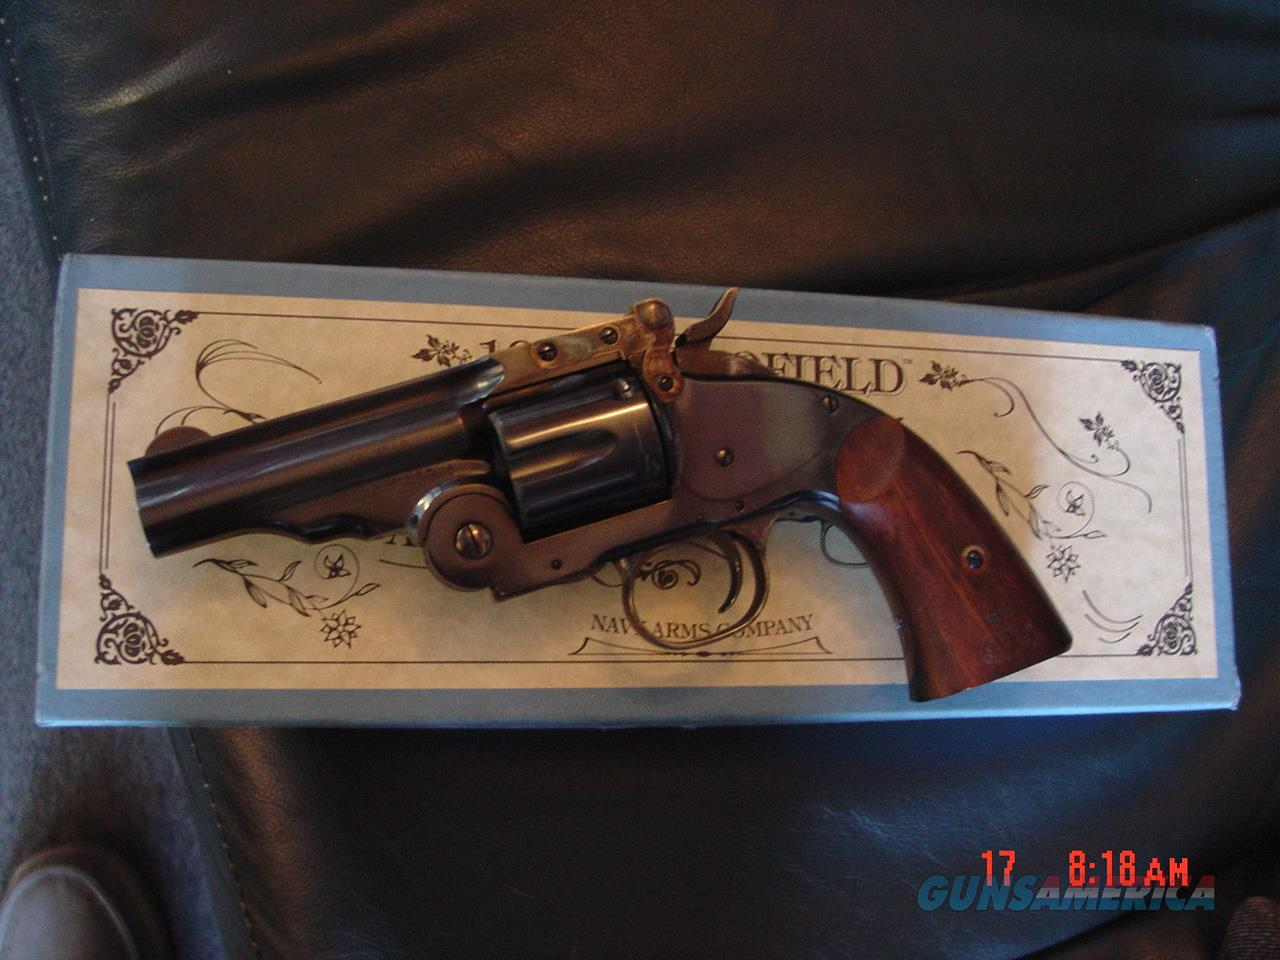 """Navy Arms/Uberti Schofield 1875 Hideout, 3 1/2"""" 45 LC, break open, 6 shots, original box,looks maybe test fired only.super nice revolver, nice wood grips  Guns > Pistols > Navy Arms Pistols"""